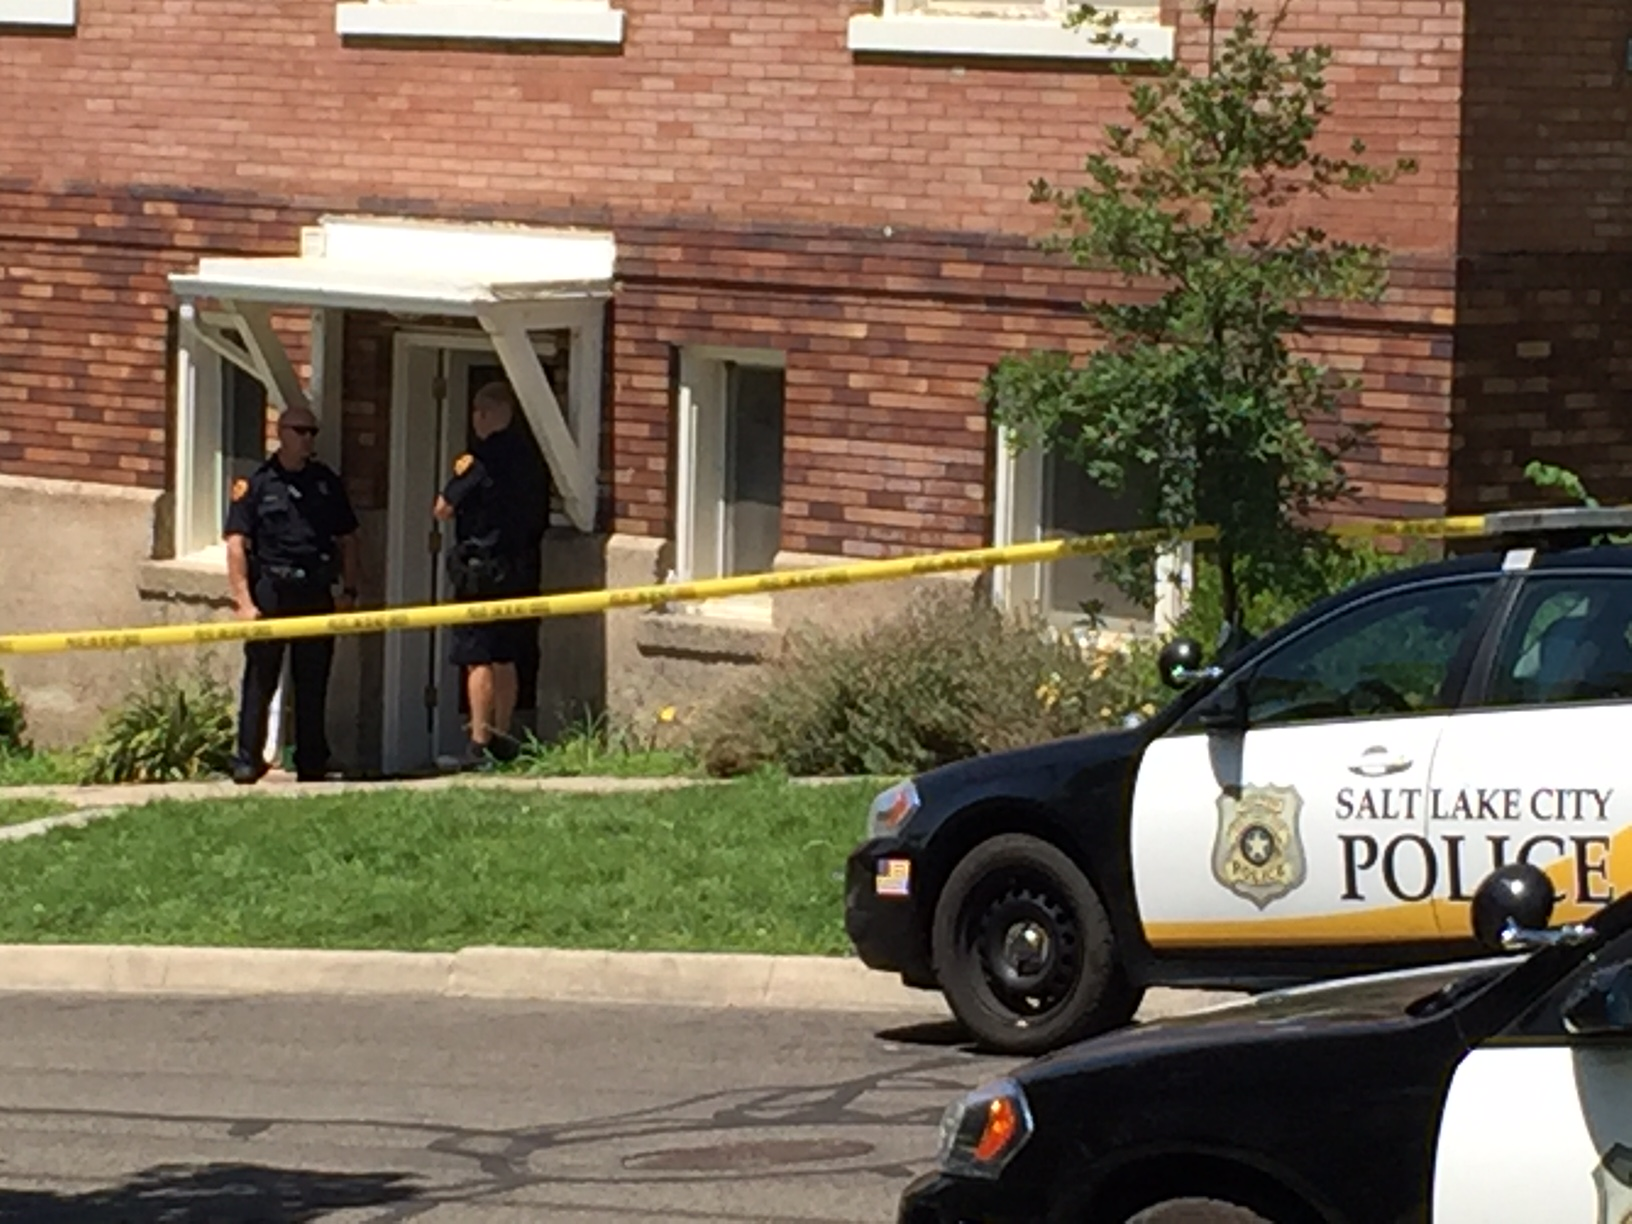 Salt Lake man shoots 8-year-old boy, then himself in murder-suicide, police say